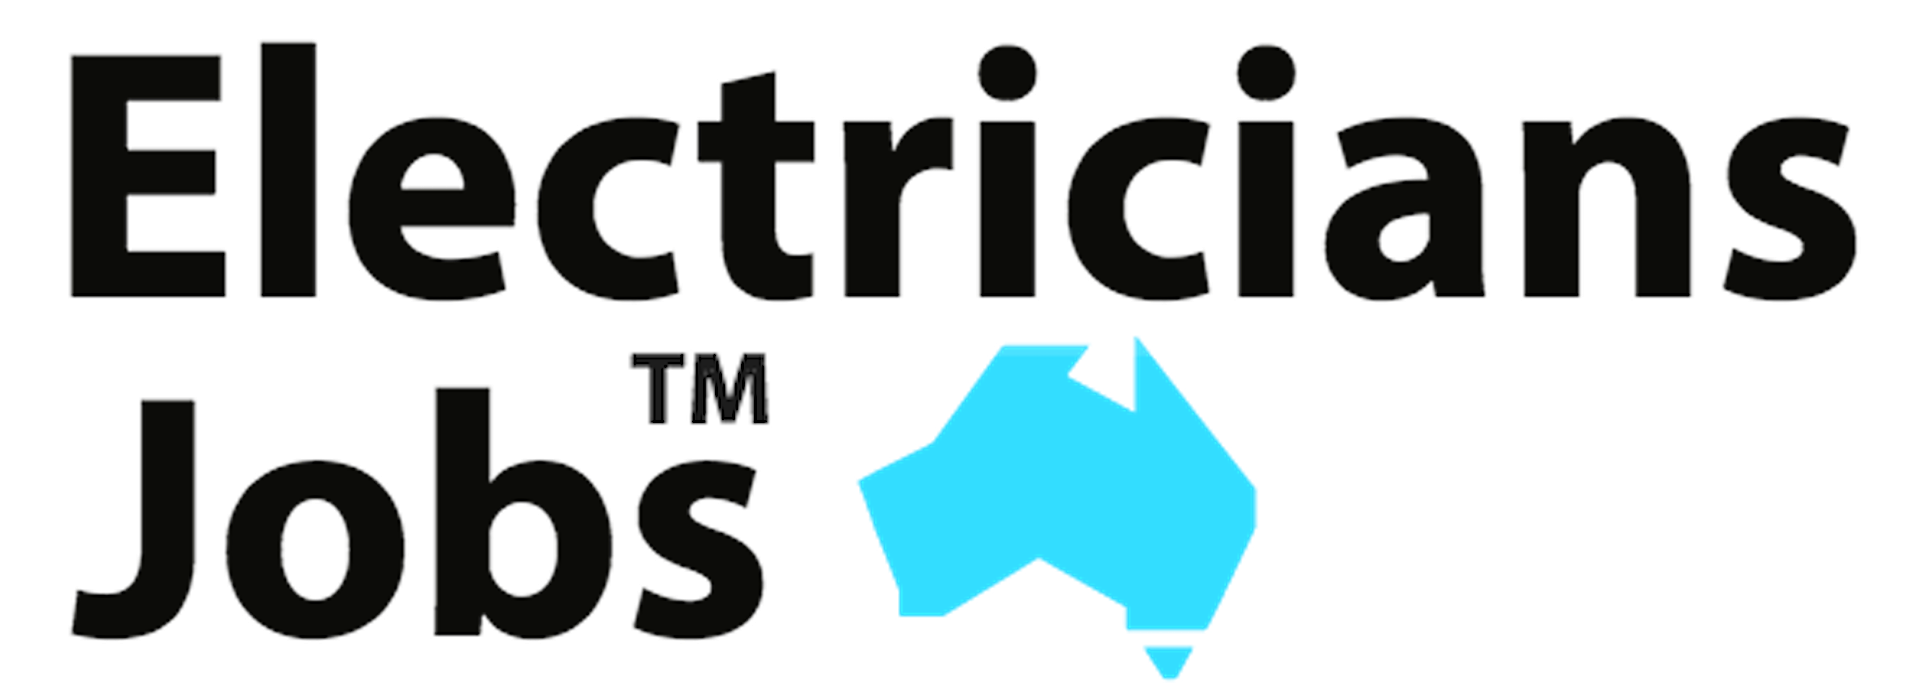 Download Fifo Electrician Jobs Png PNG Image with No Background.